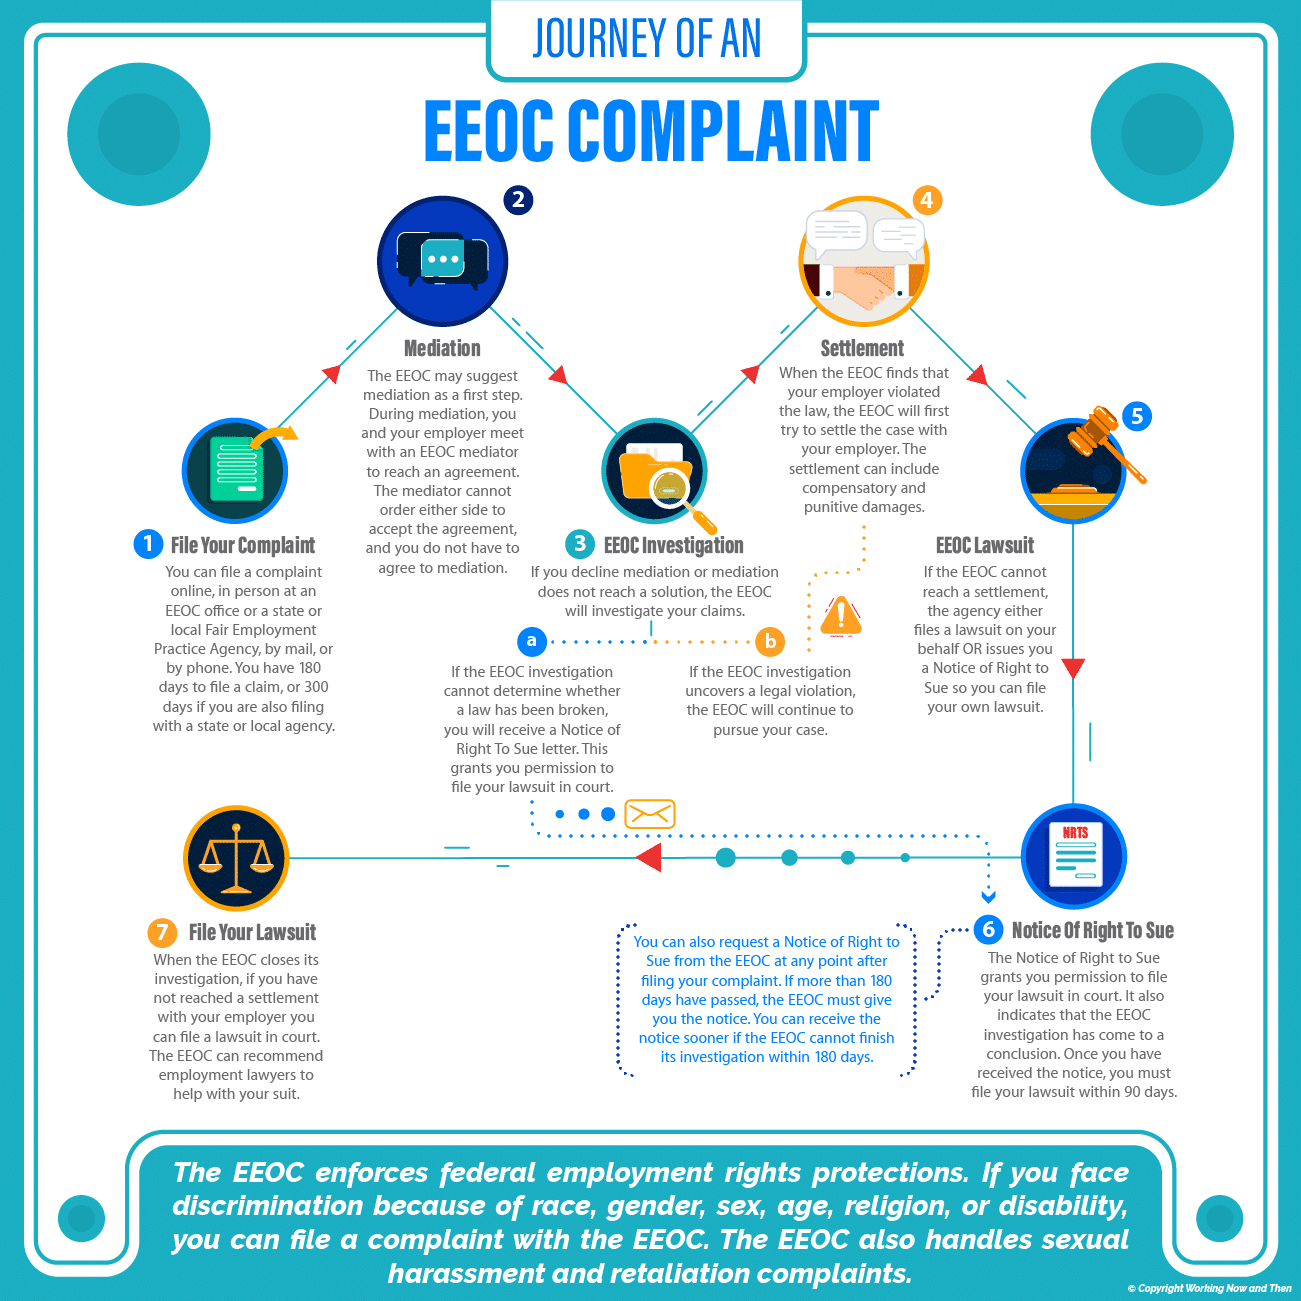 Journey of an EEOC Complaint